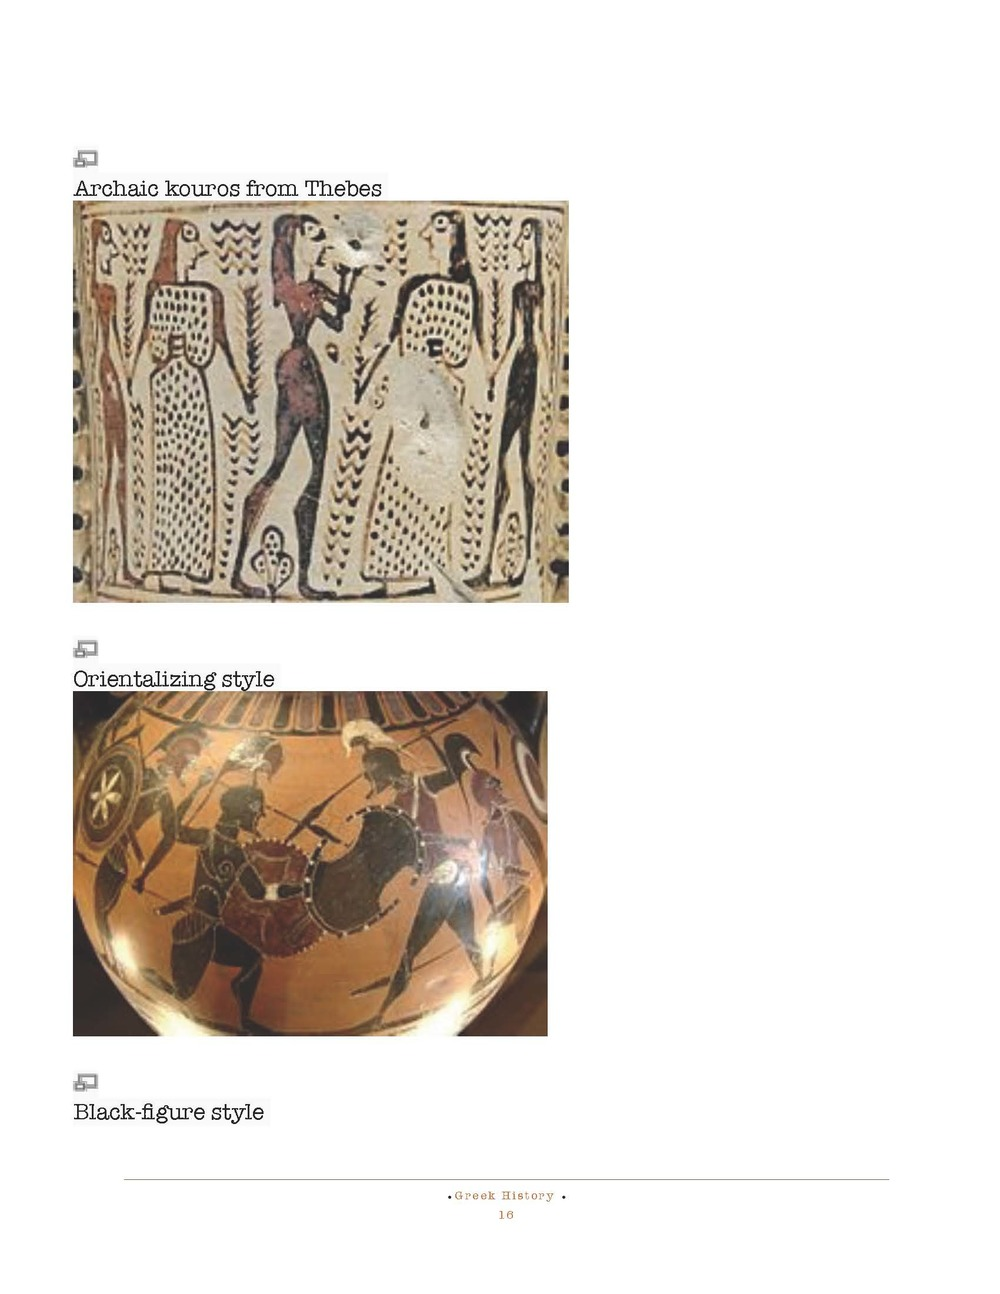 HOCE- Ancient Greece Notes_Page_016.jpg